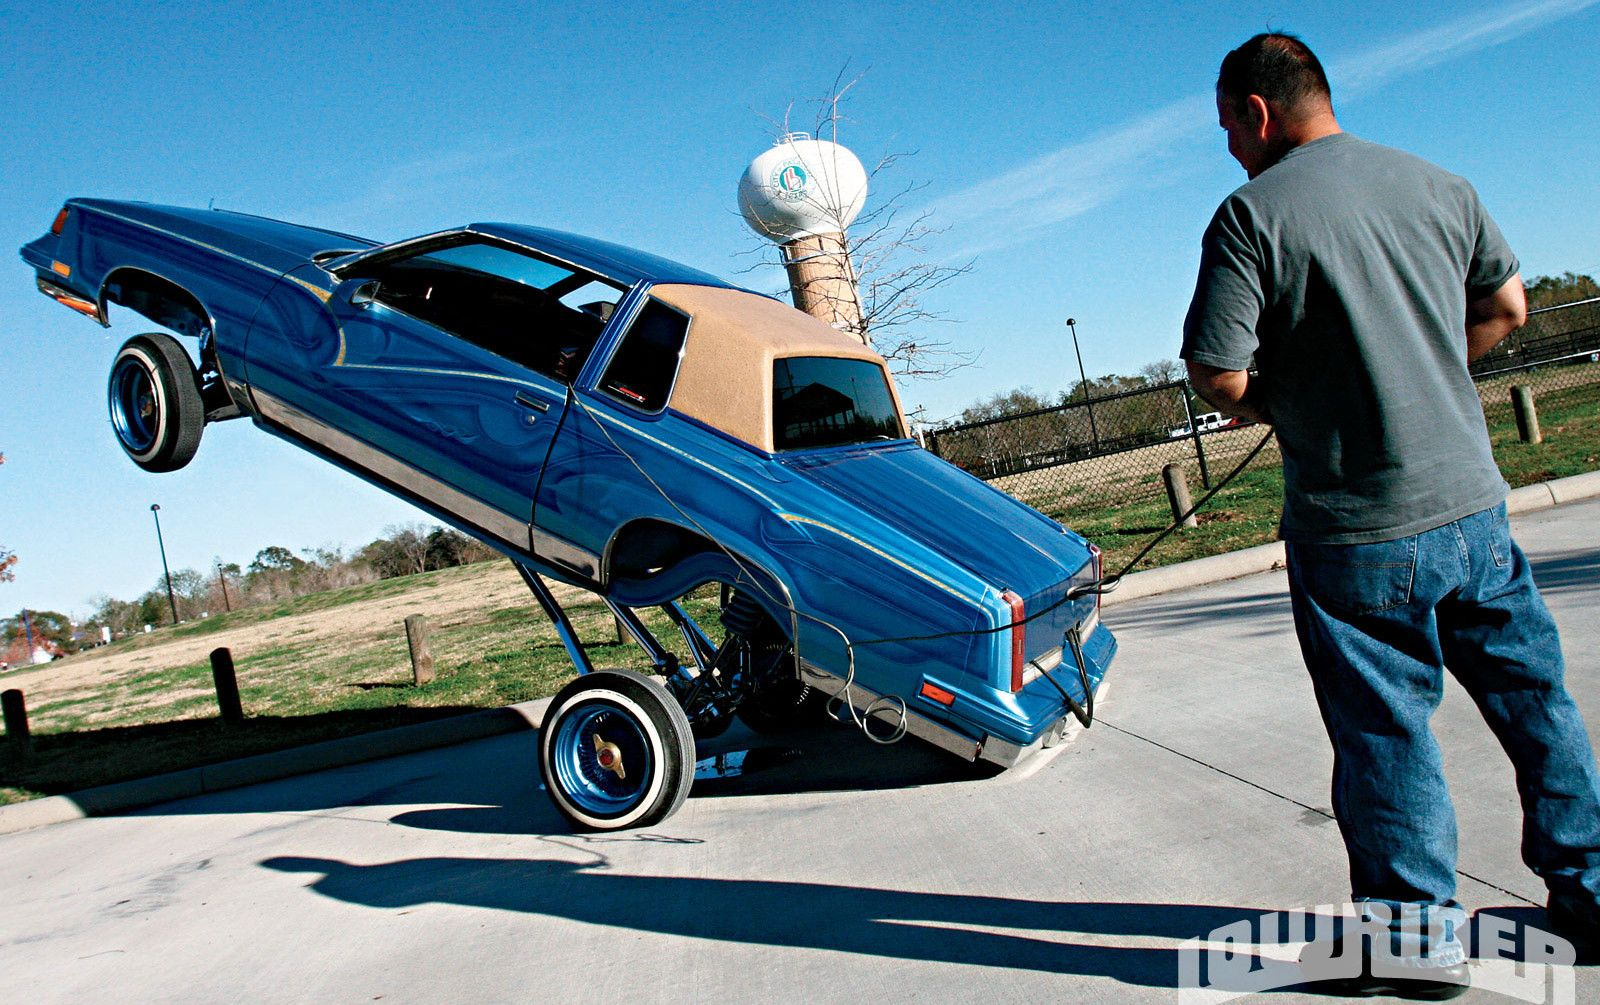 Blue 1987 Oldsmobile Cutlass Lowrider Hopping Picture HD ...